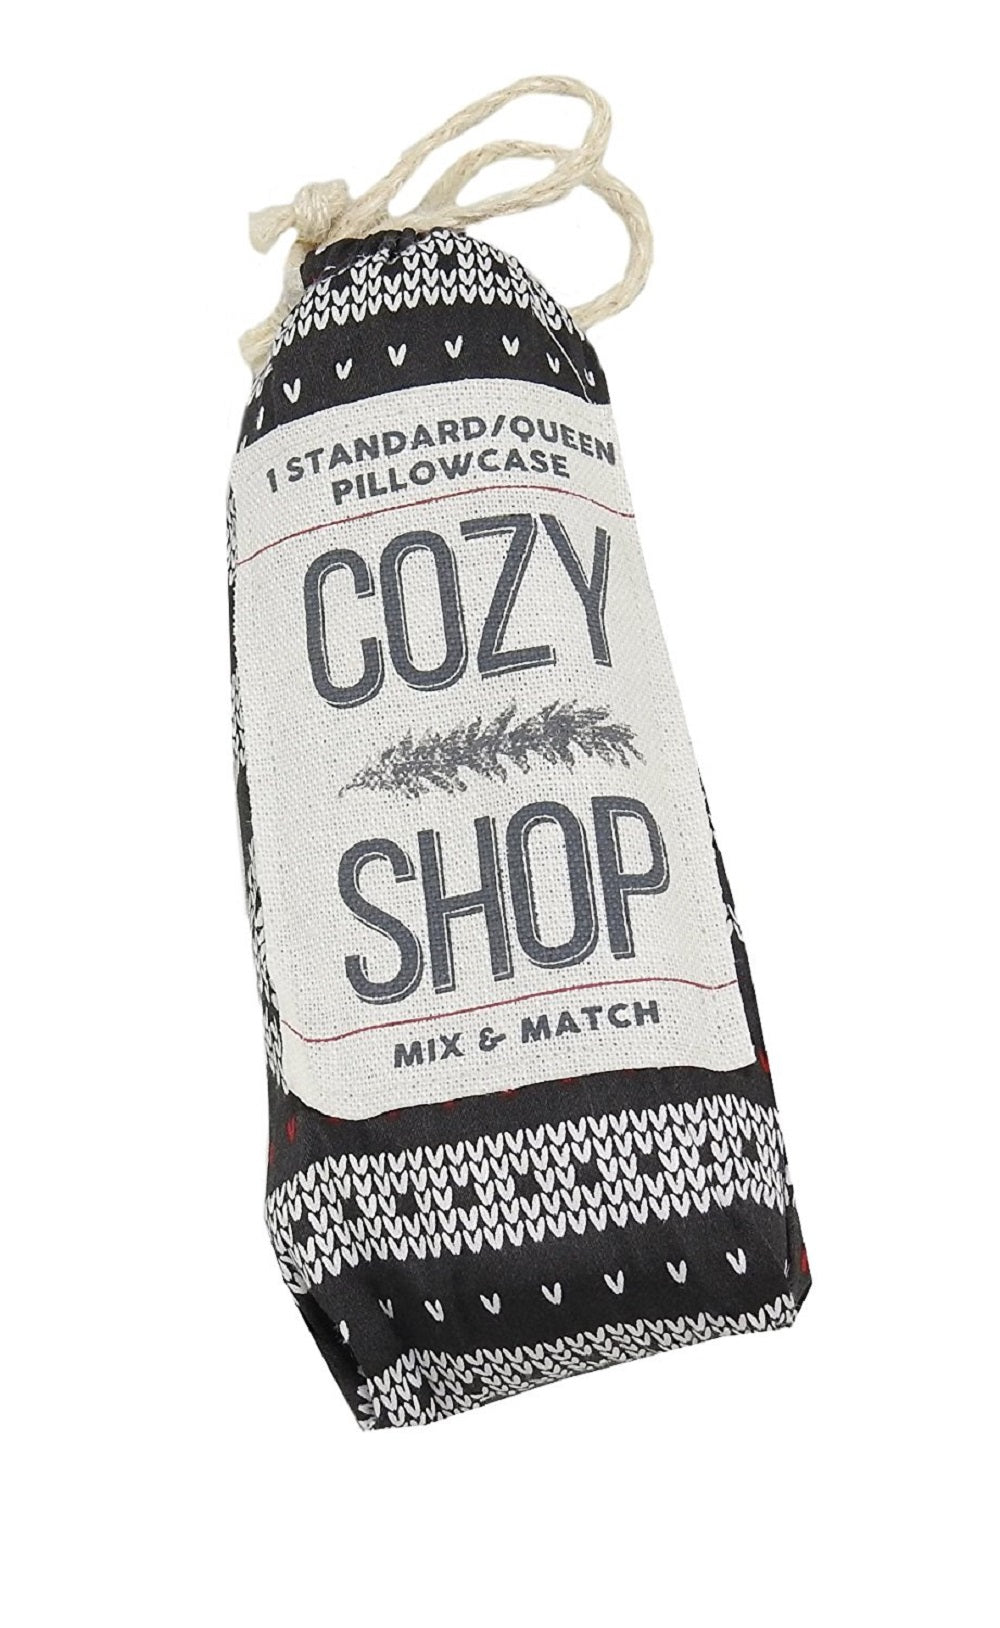 Cozy Shop Mix & Match 1-Standard Queen Pillowcase, Black Snow Flake